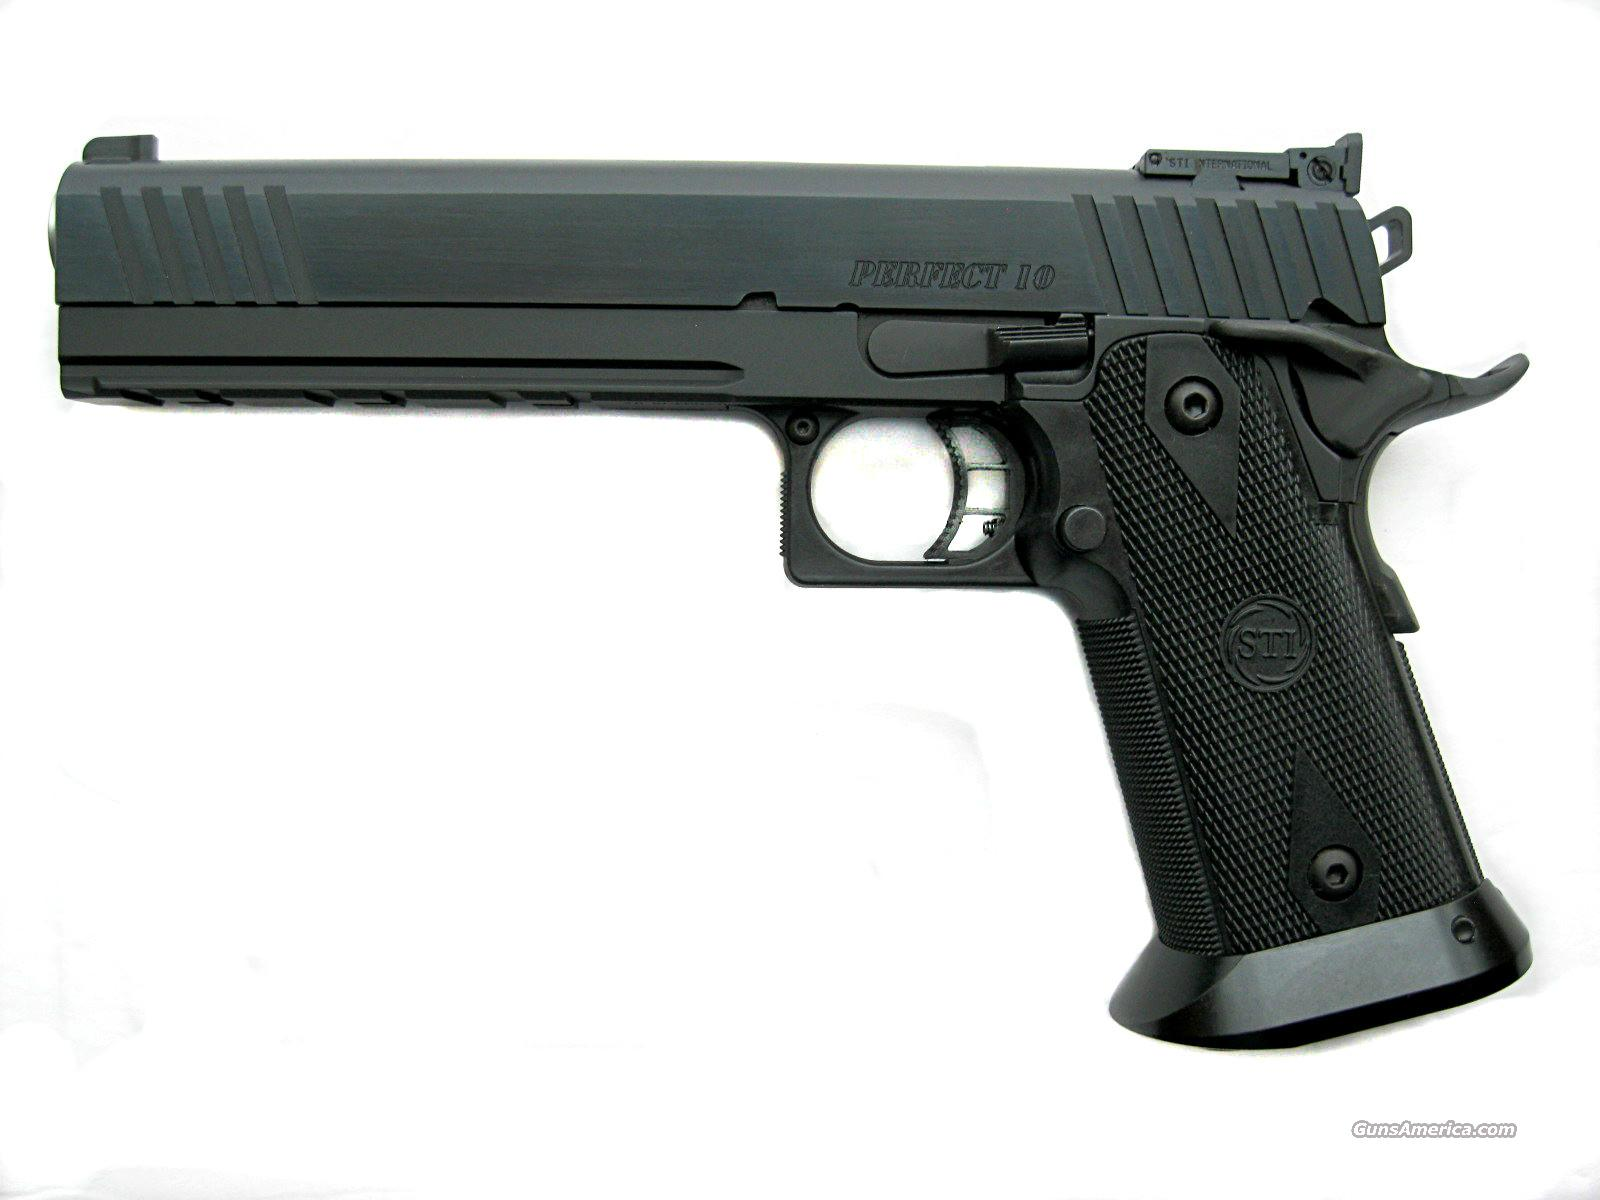 "STI 6.0 Perfect 10 Tactical 2011 Hi-Cap 6"" 10mm *NEW*   Guns > Pistols > STI Pistols"